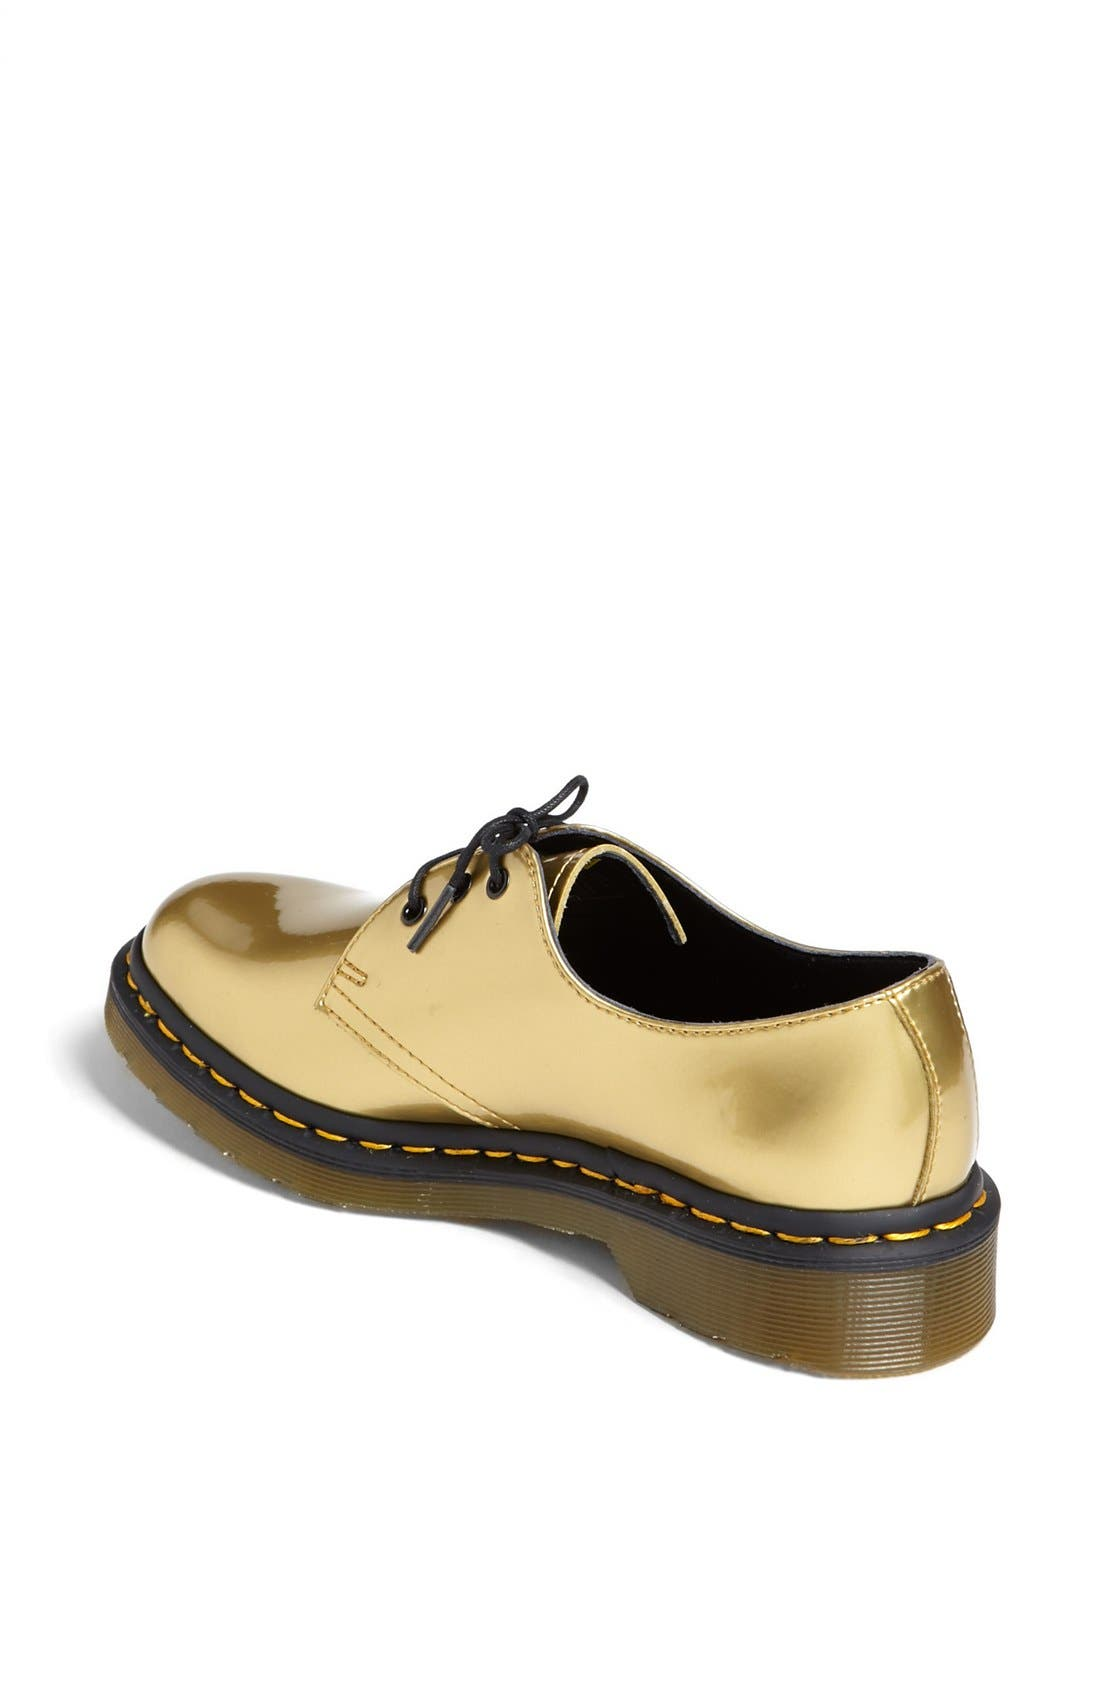 Alternate Image 2  - Dr. Martens '1461 W' Oxford